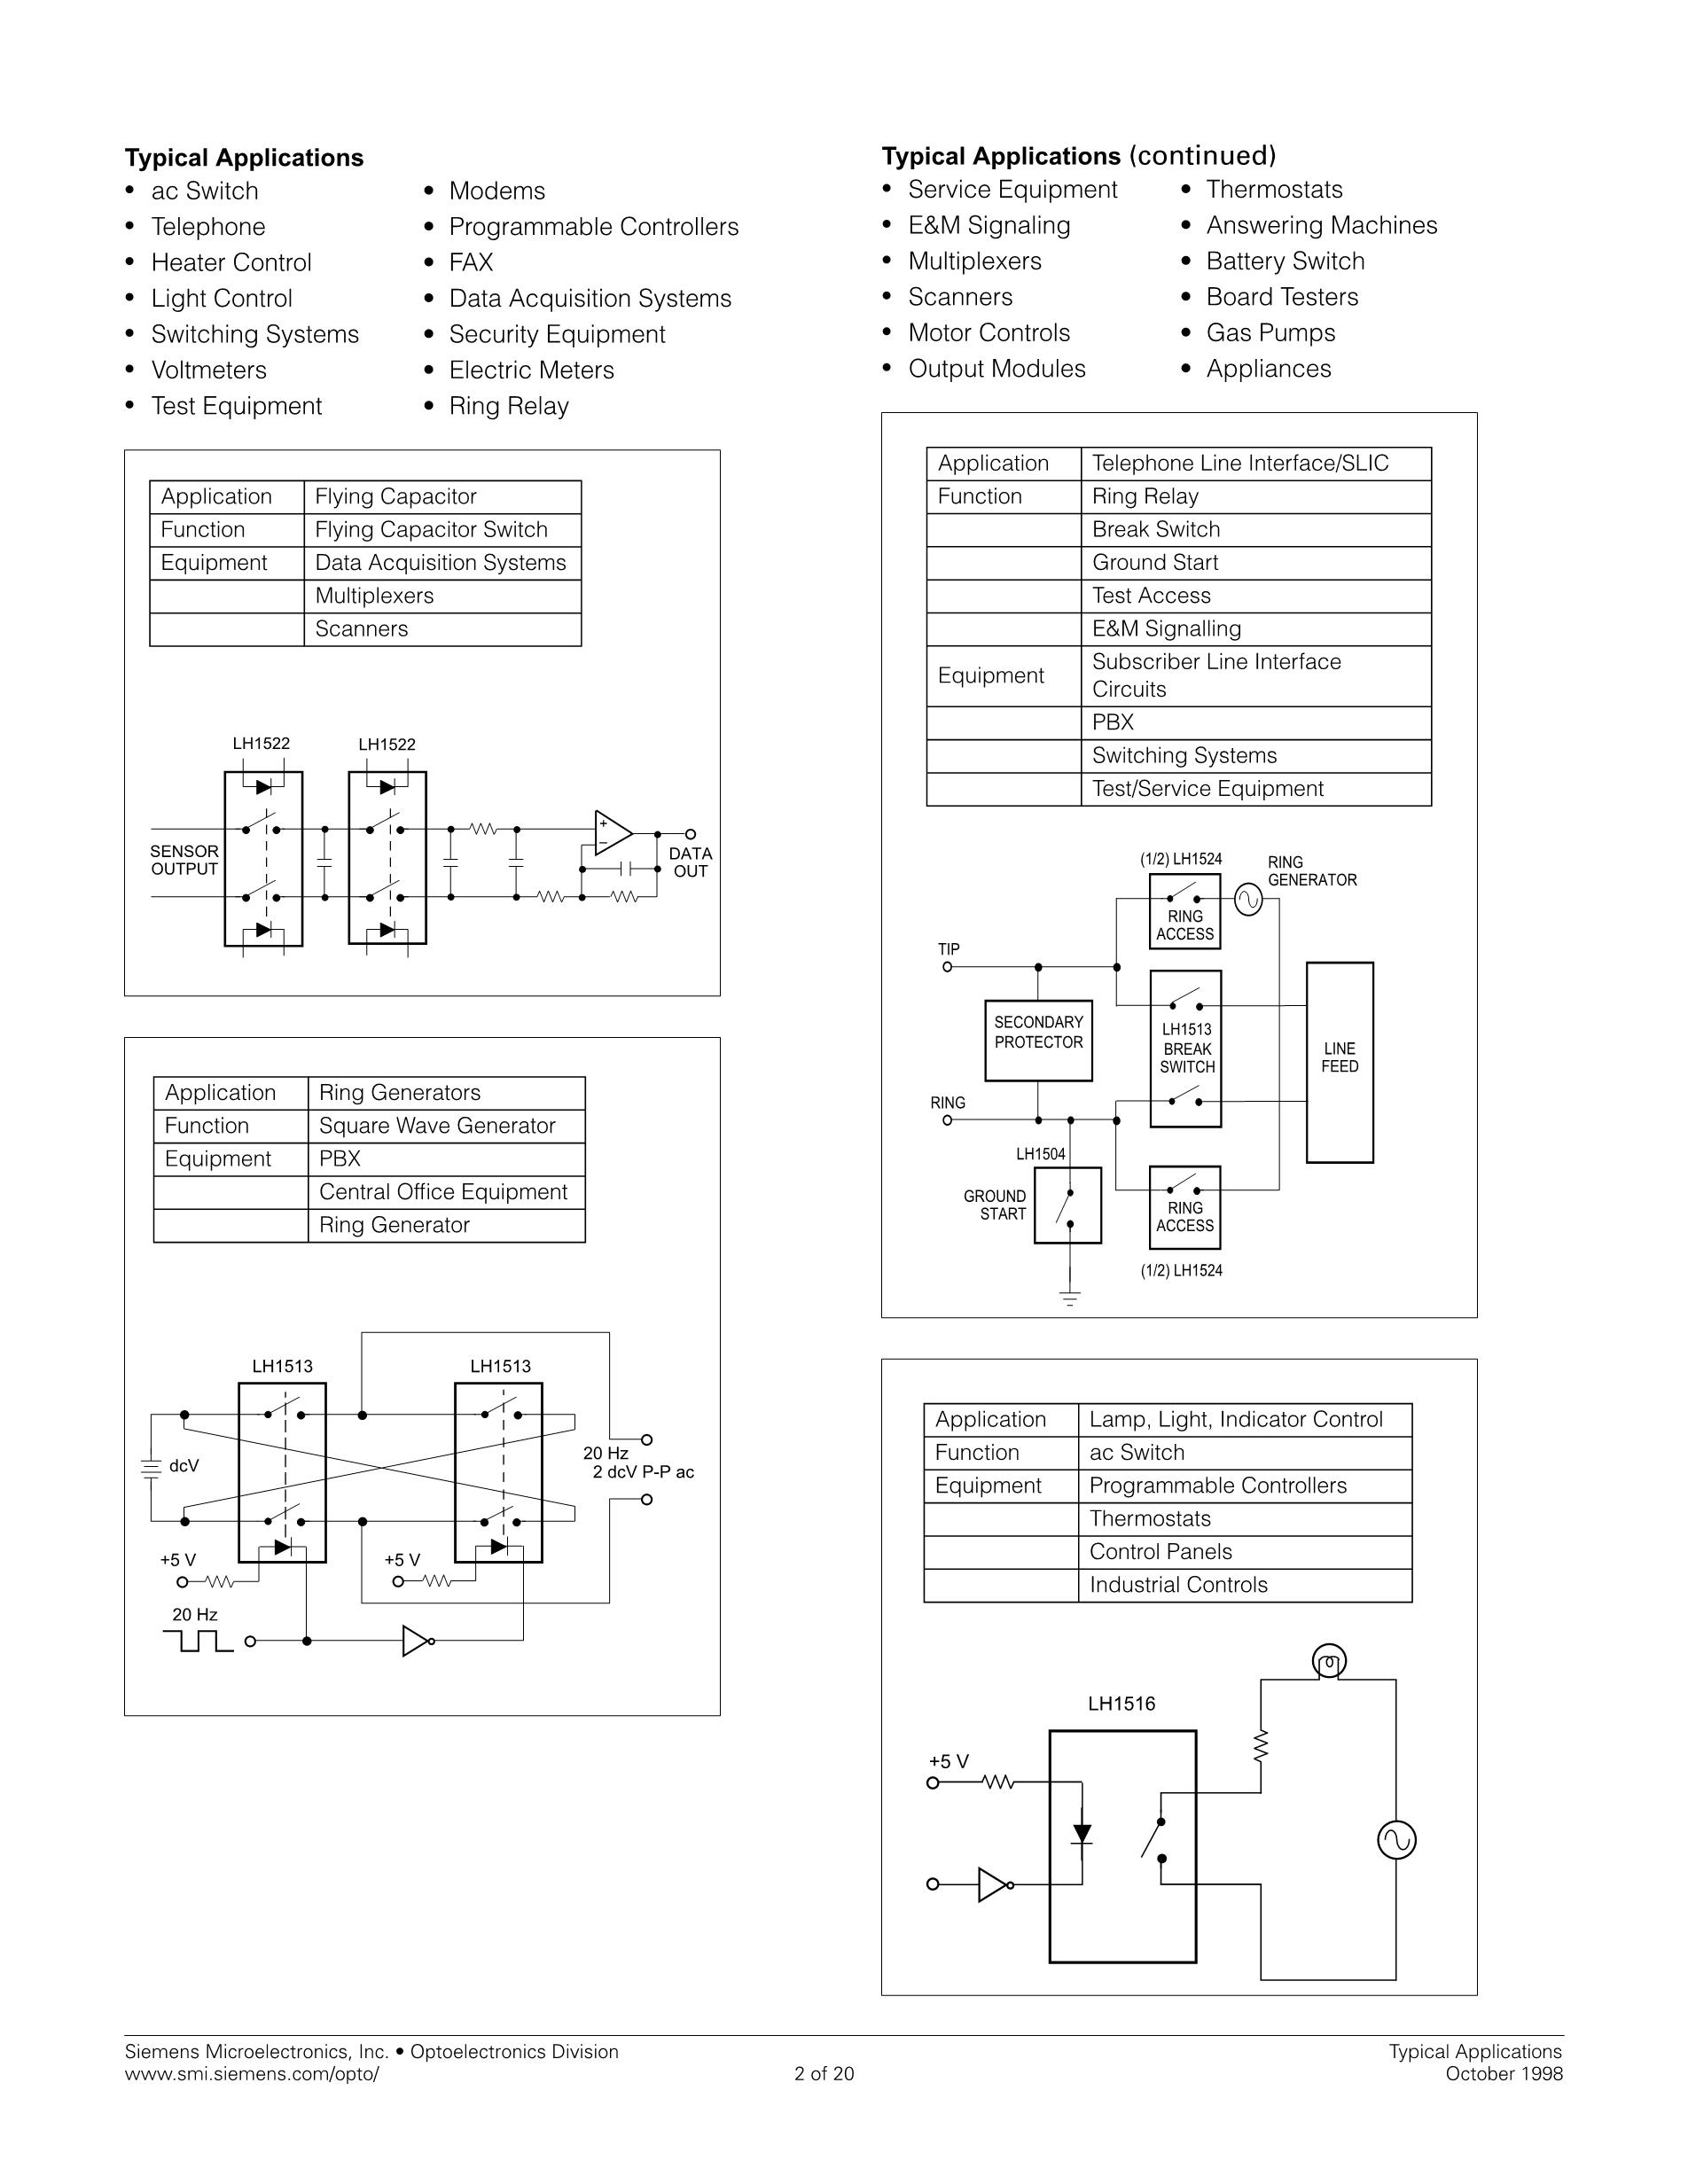 LH1530AABTR's pdf picture 2